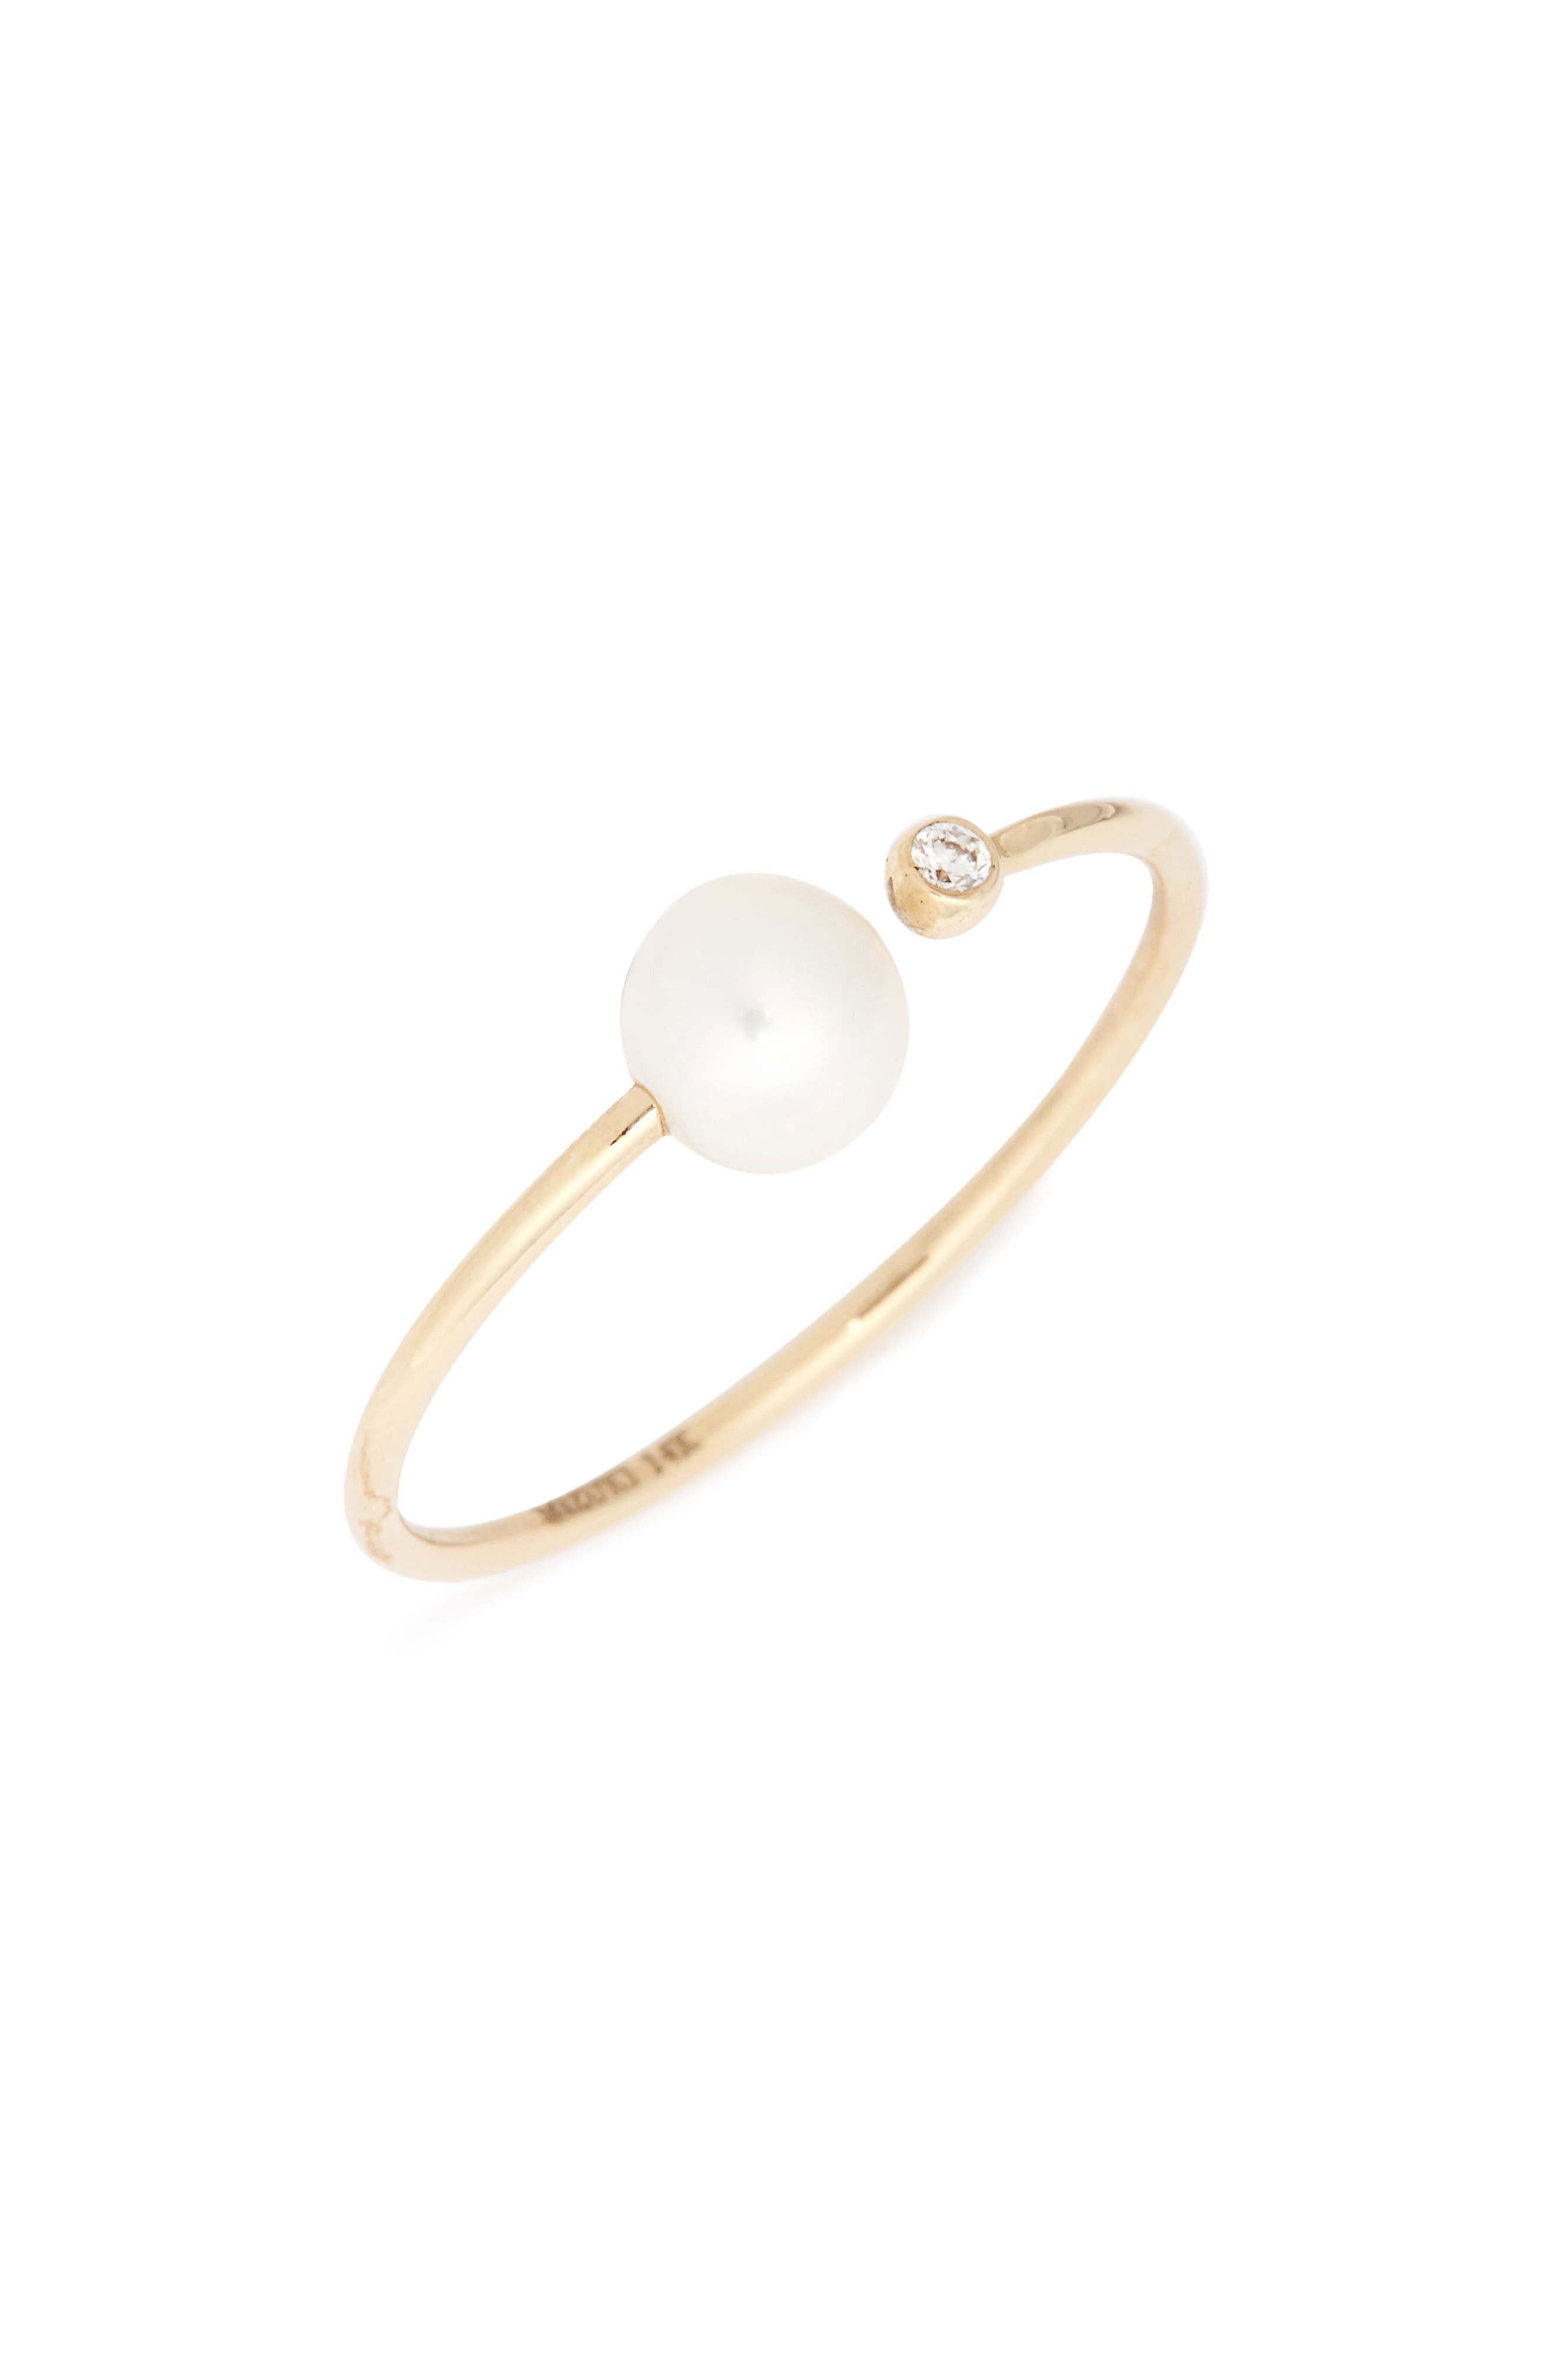 Sea of Beauty Pearl & Diamond Open Stack Ring,                             Main thumbnail 1, color,                             YELLOW GOLD/ WHITE PEARL